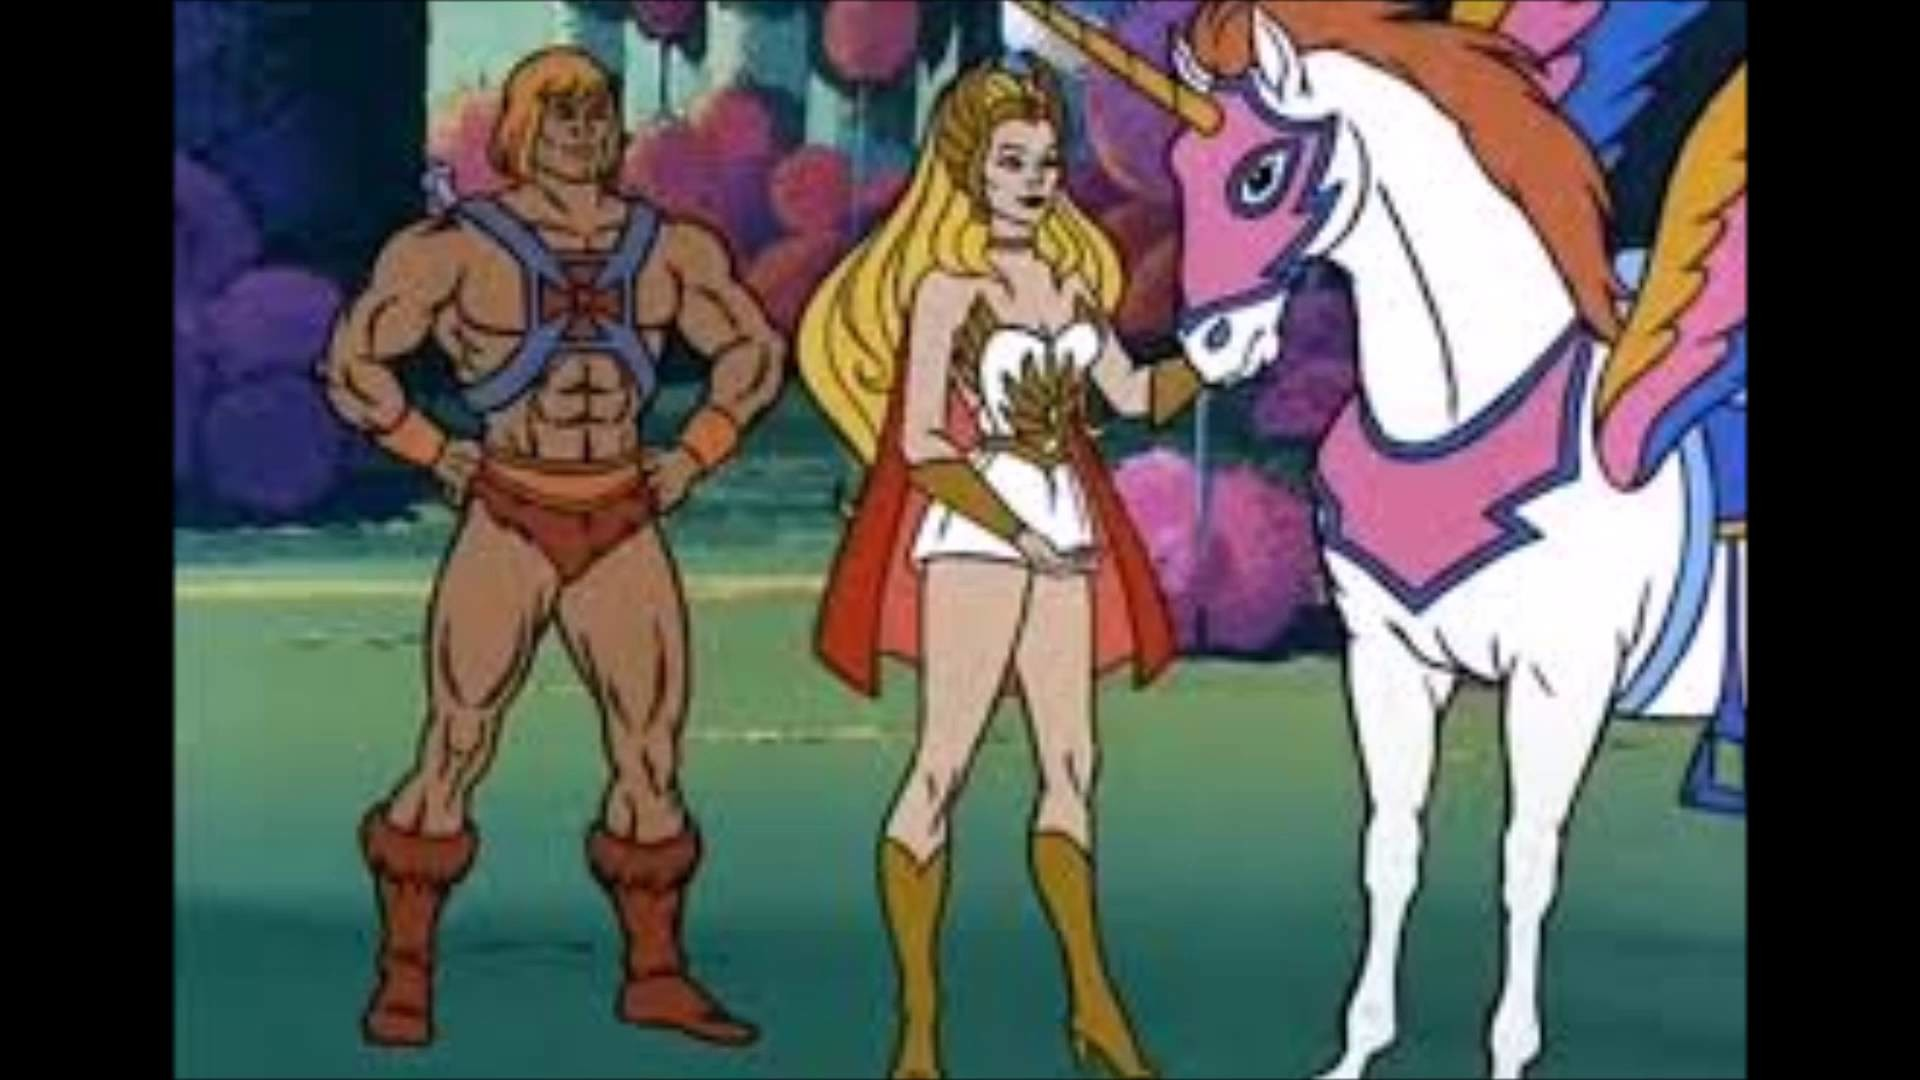 Res: 1920x1080, He-Man and She-Ra:A Christmas Special (1985) movie review.